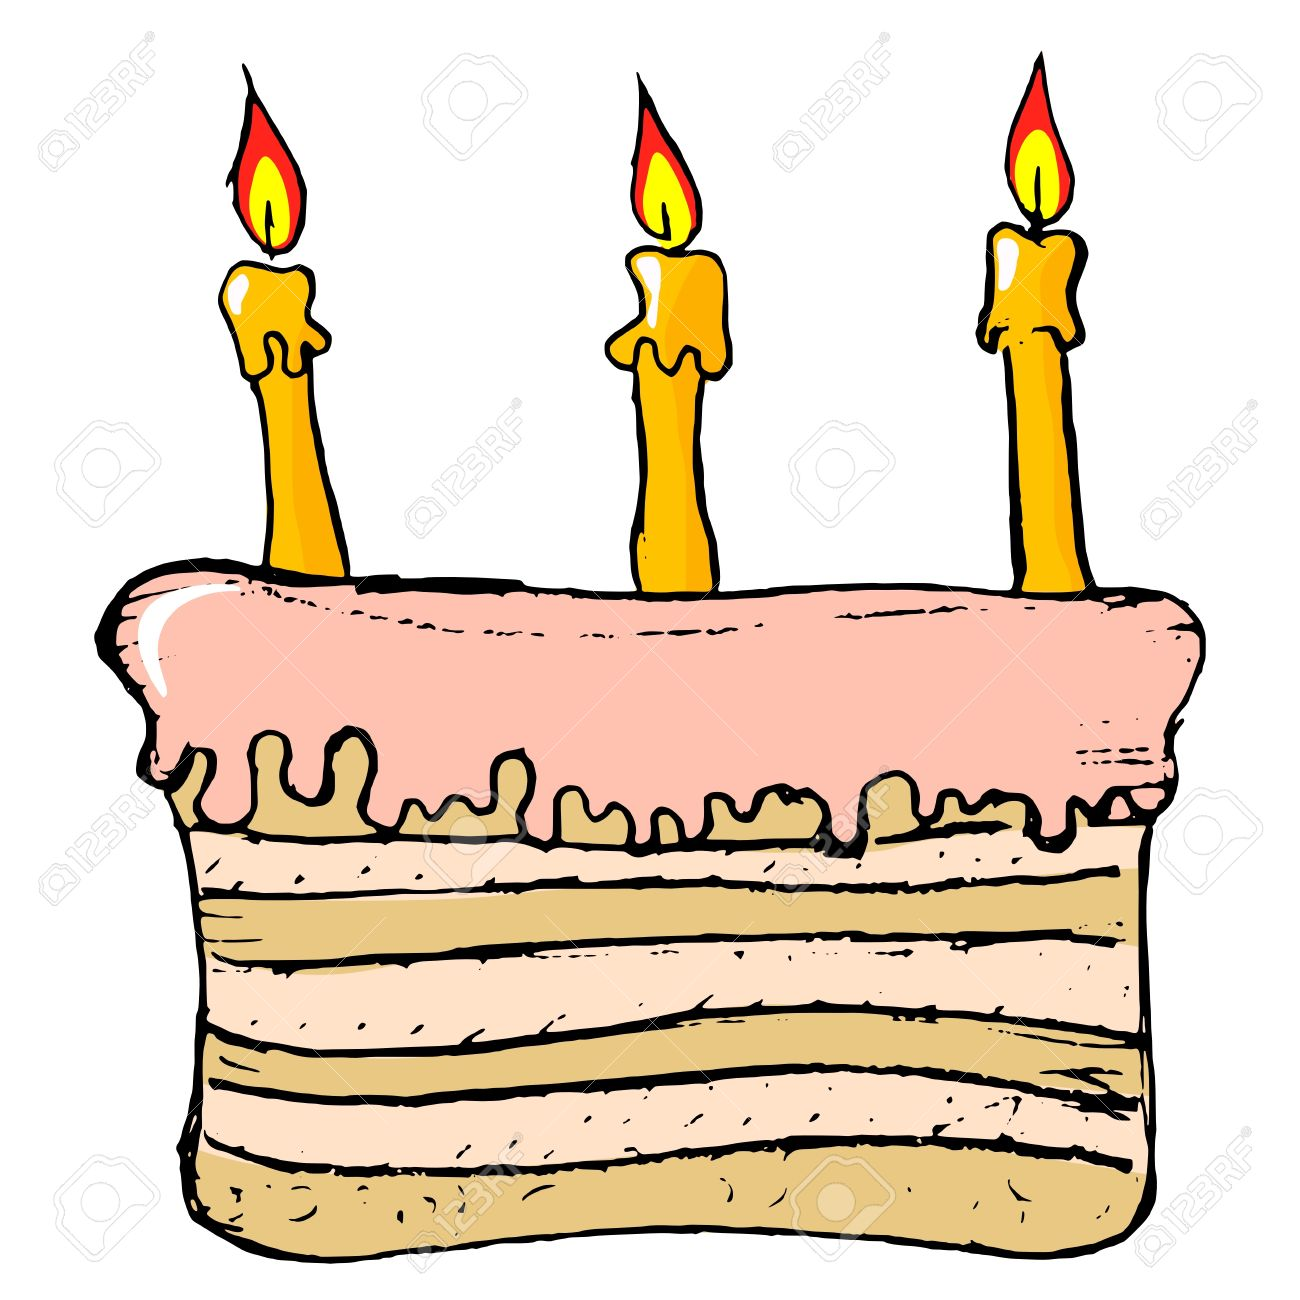 Hand Drawn Cartoon Image Of Birthday Cake Royalty Free Cliparts